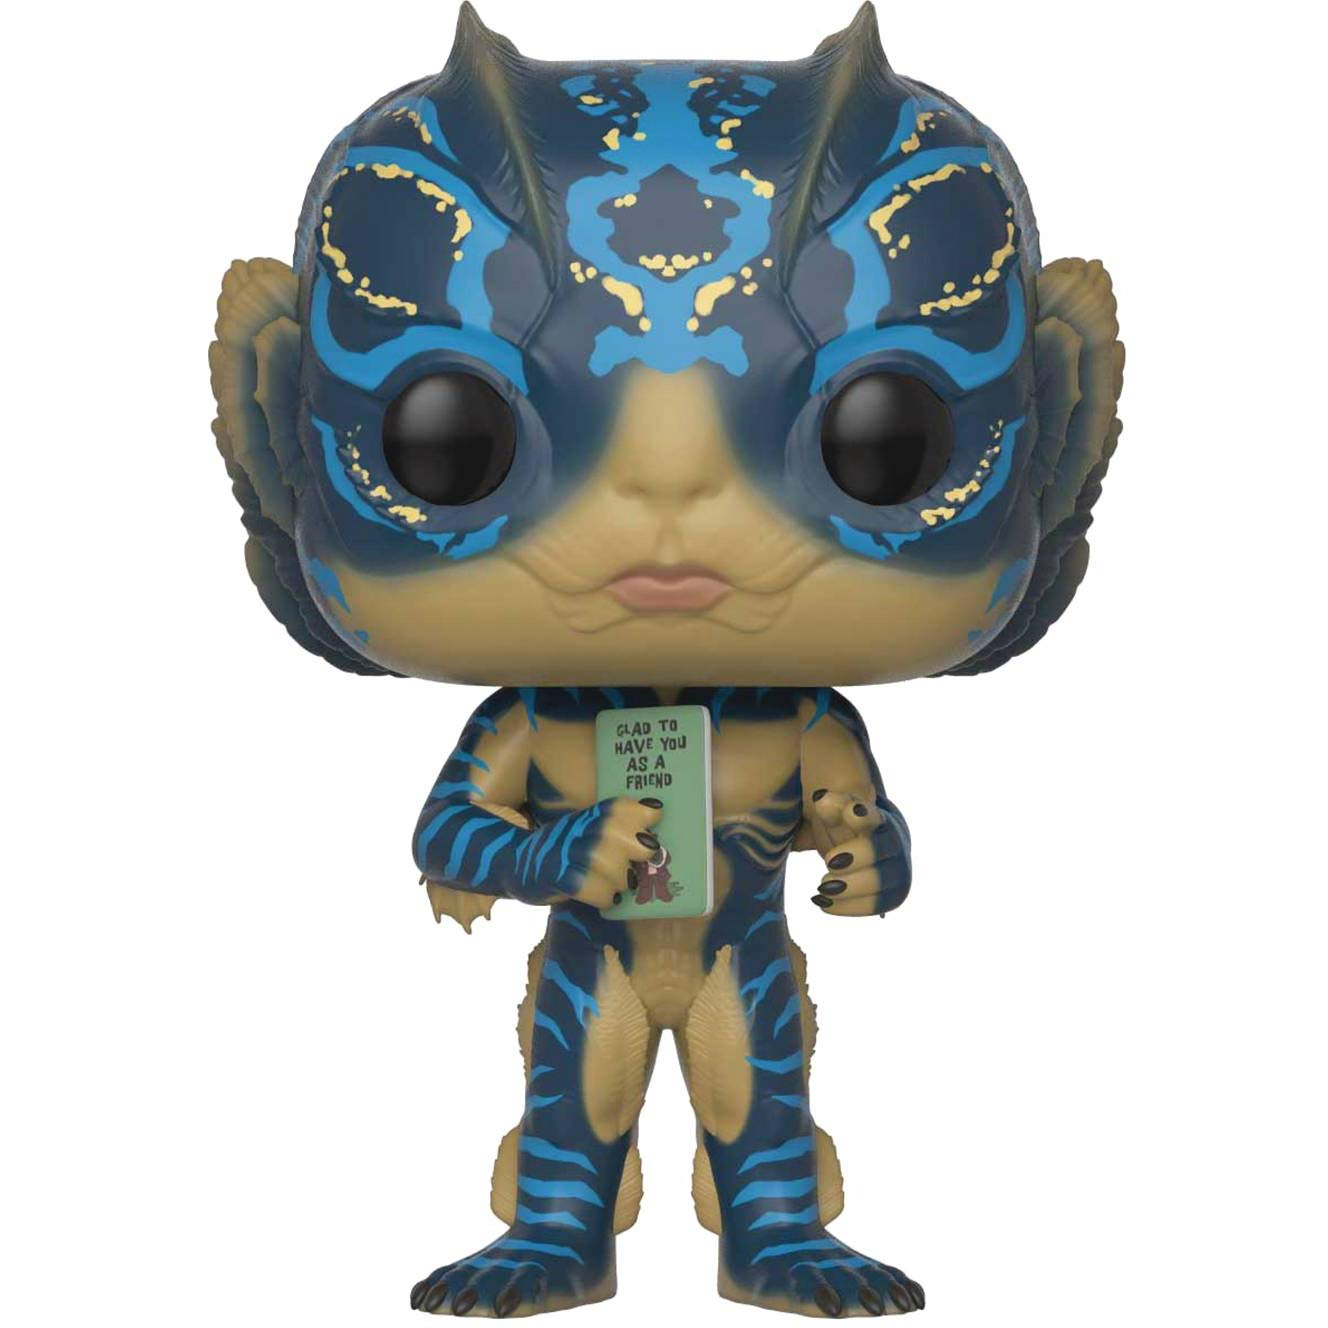 #637 // 32485 - B Movies Vinyl Figure /& 1 POP Amphibian Man: Shape of Water x Funko POP BCC9U82W Compatible PET Plastic Graphical Protector Bundle